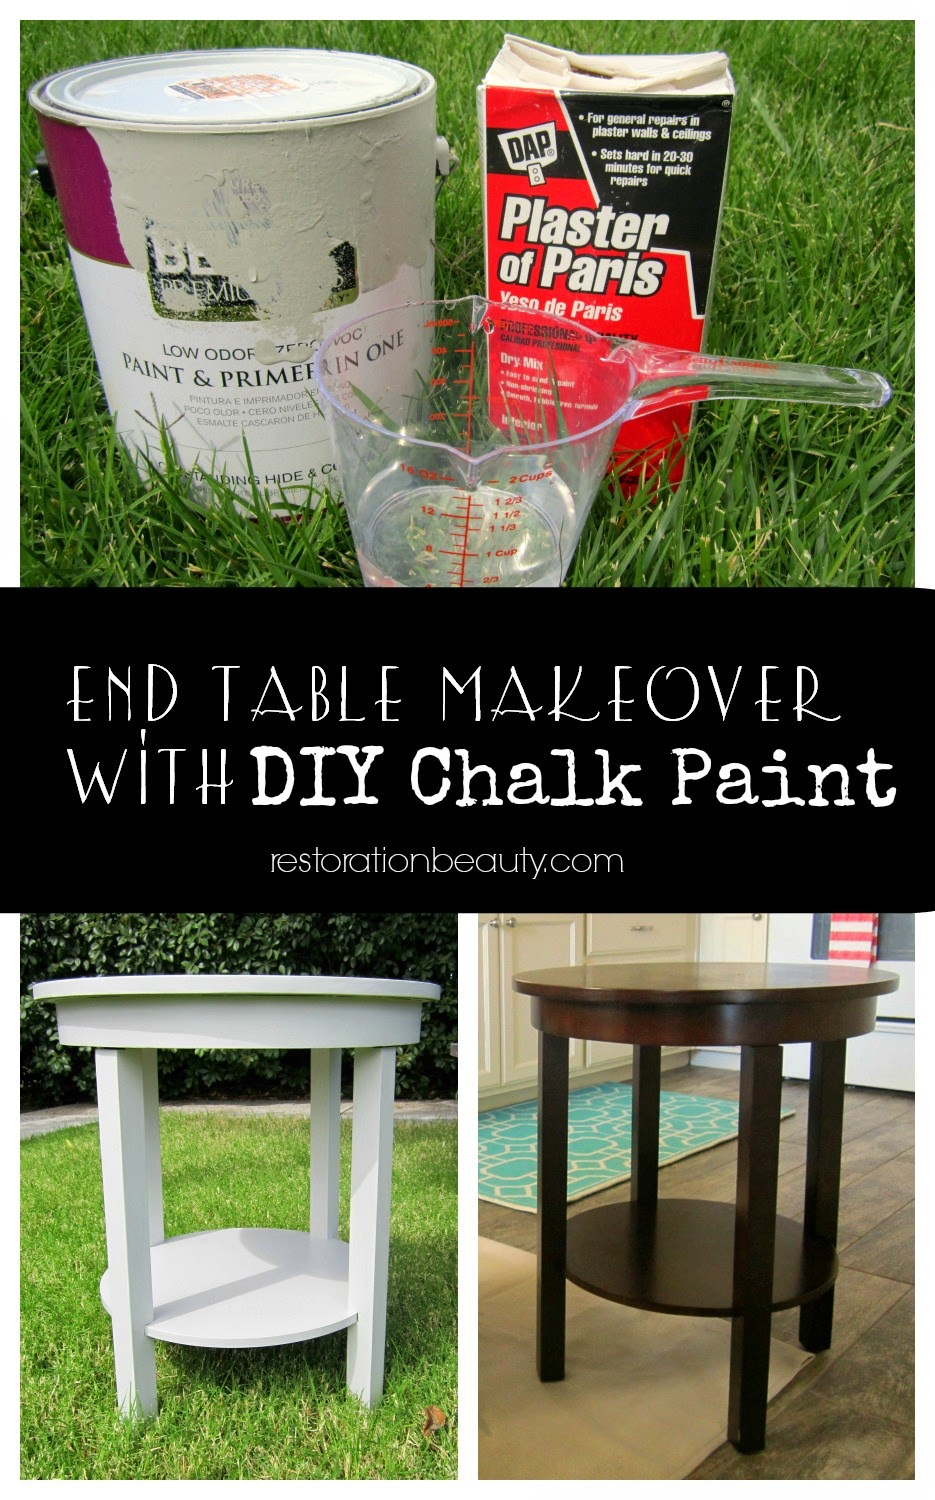 Restoration Beauty End Table Makeover Using Diy Chalk Paint